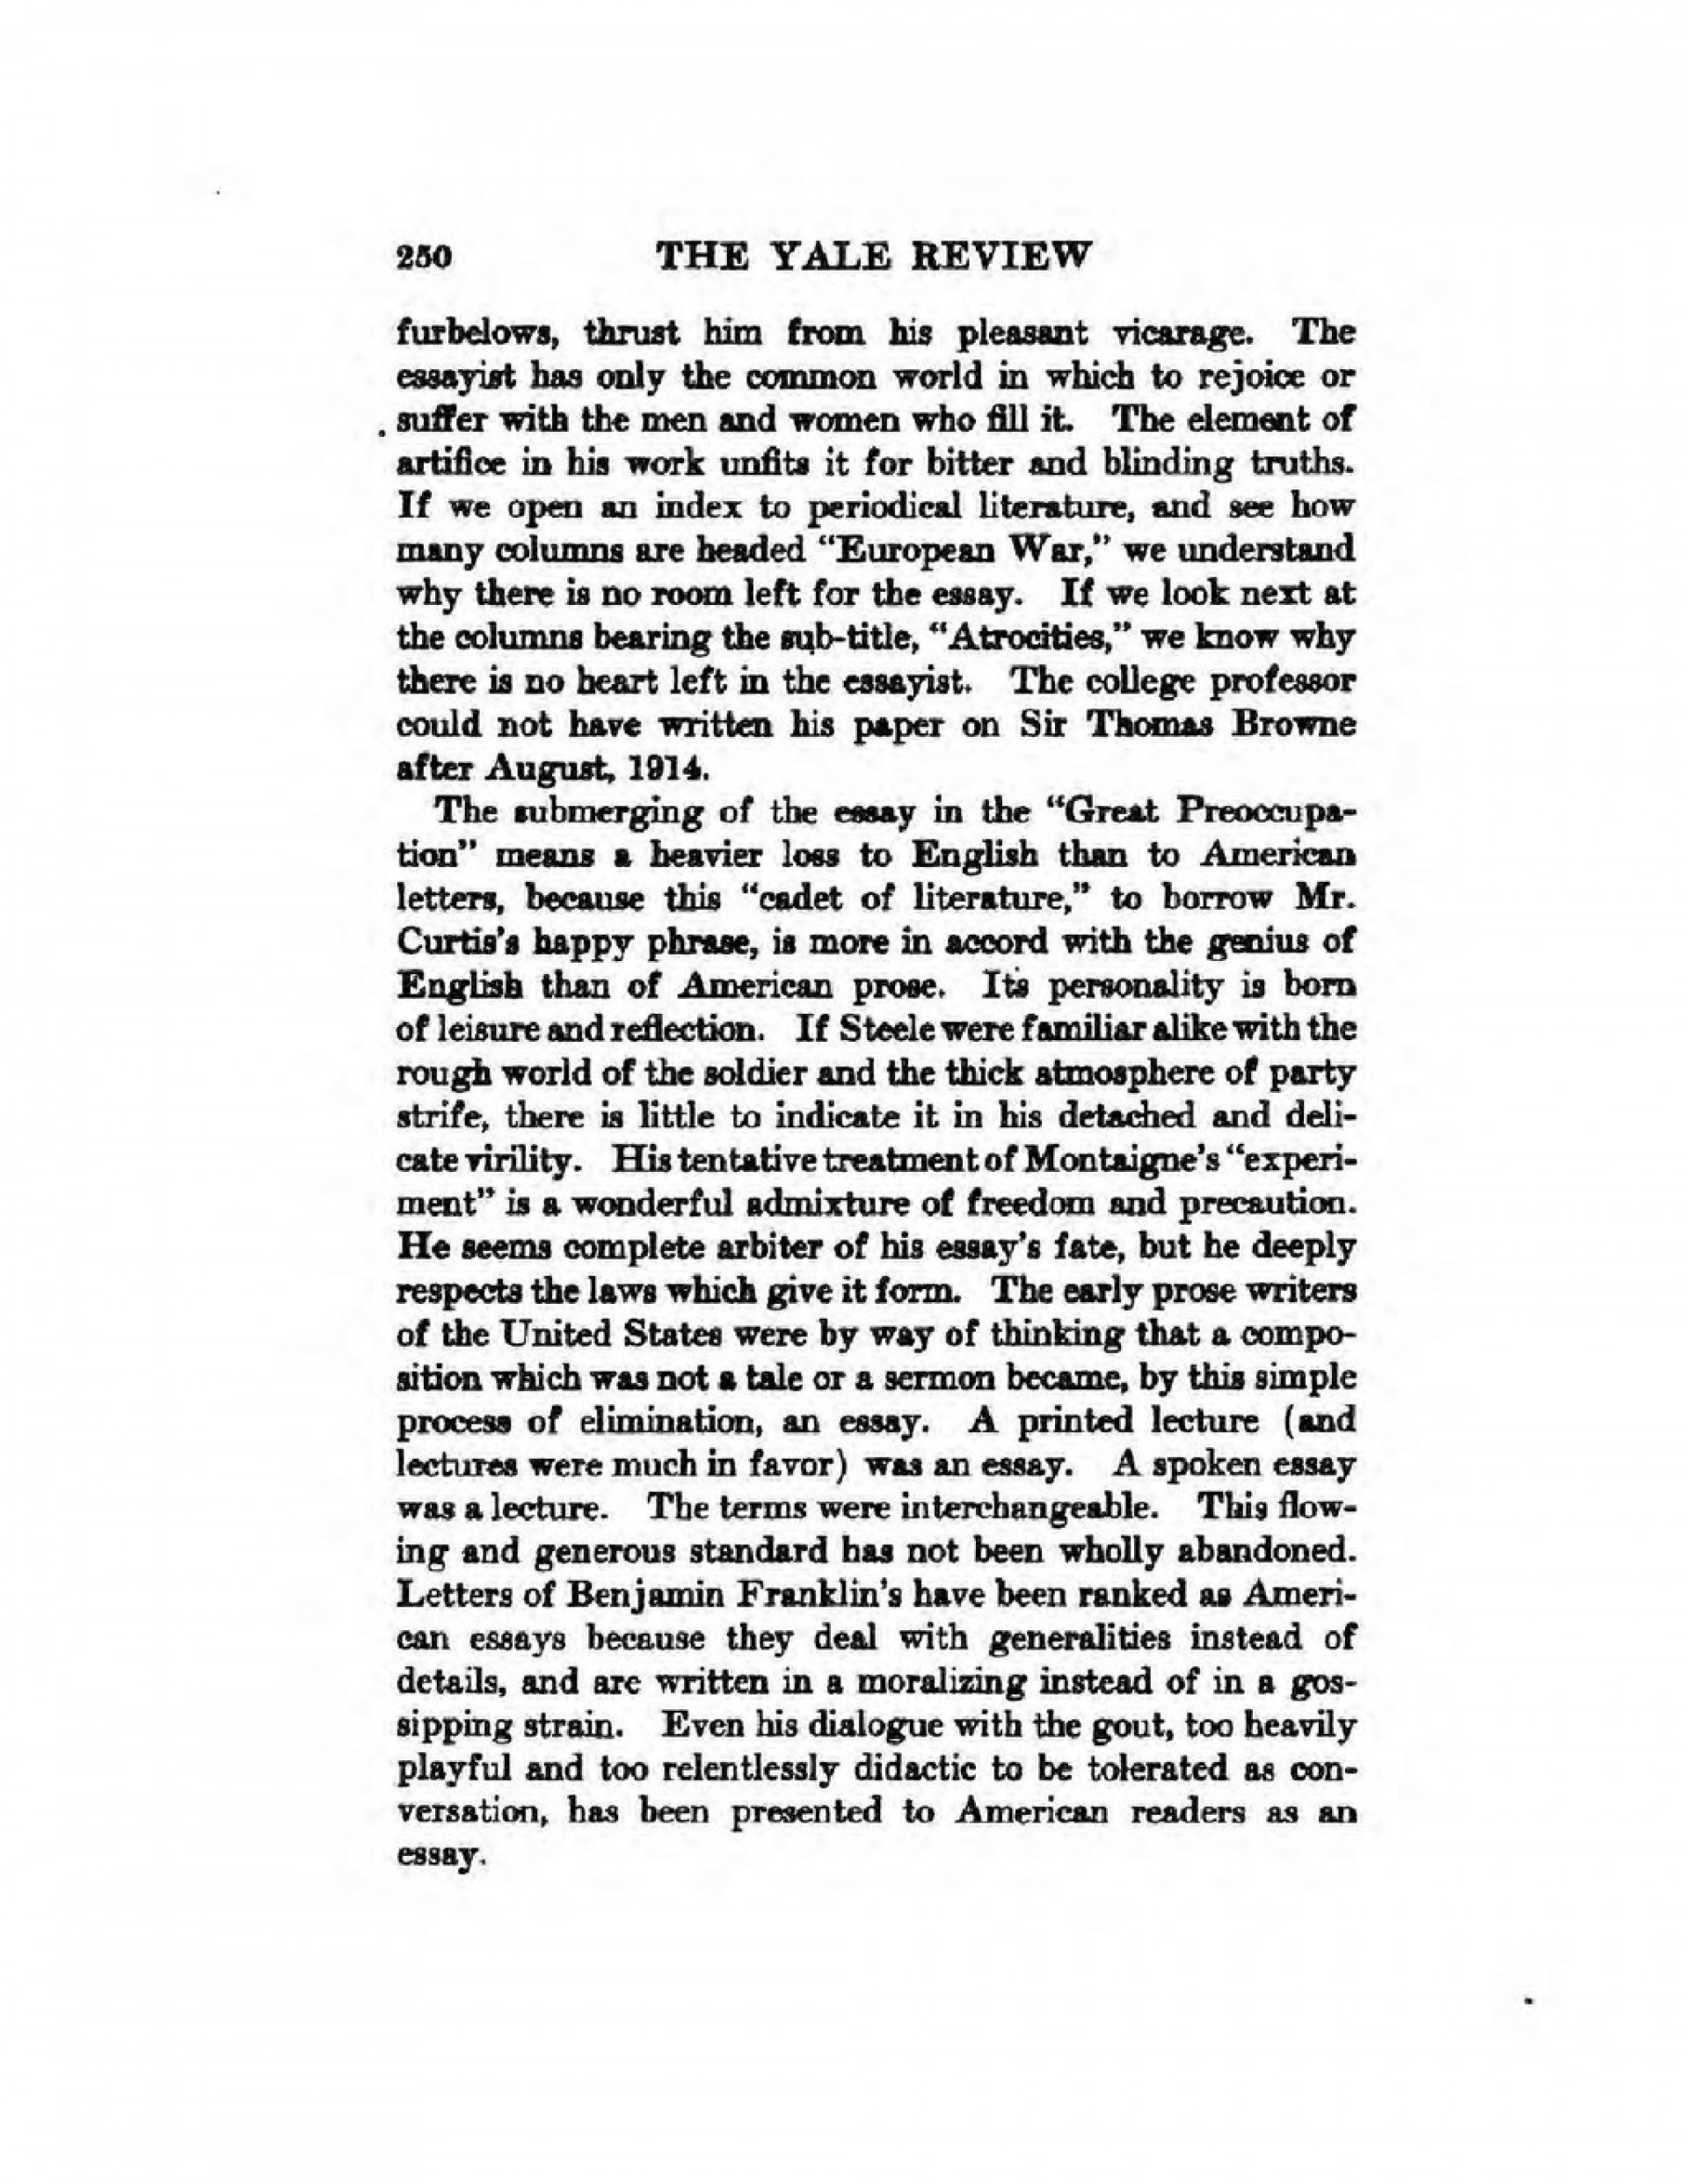 007 Essay Example What Is An American Page2 1024px The In War Time2c Agnes Repplier2c 1918 Stupendous Thesis Your Dream Ideas 1920